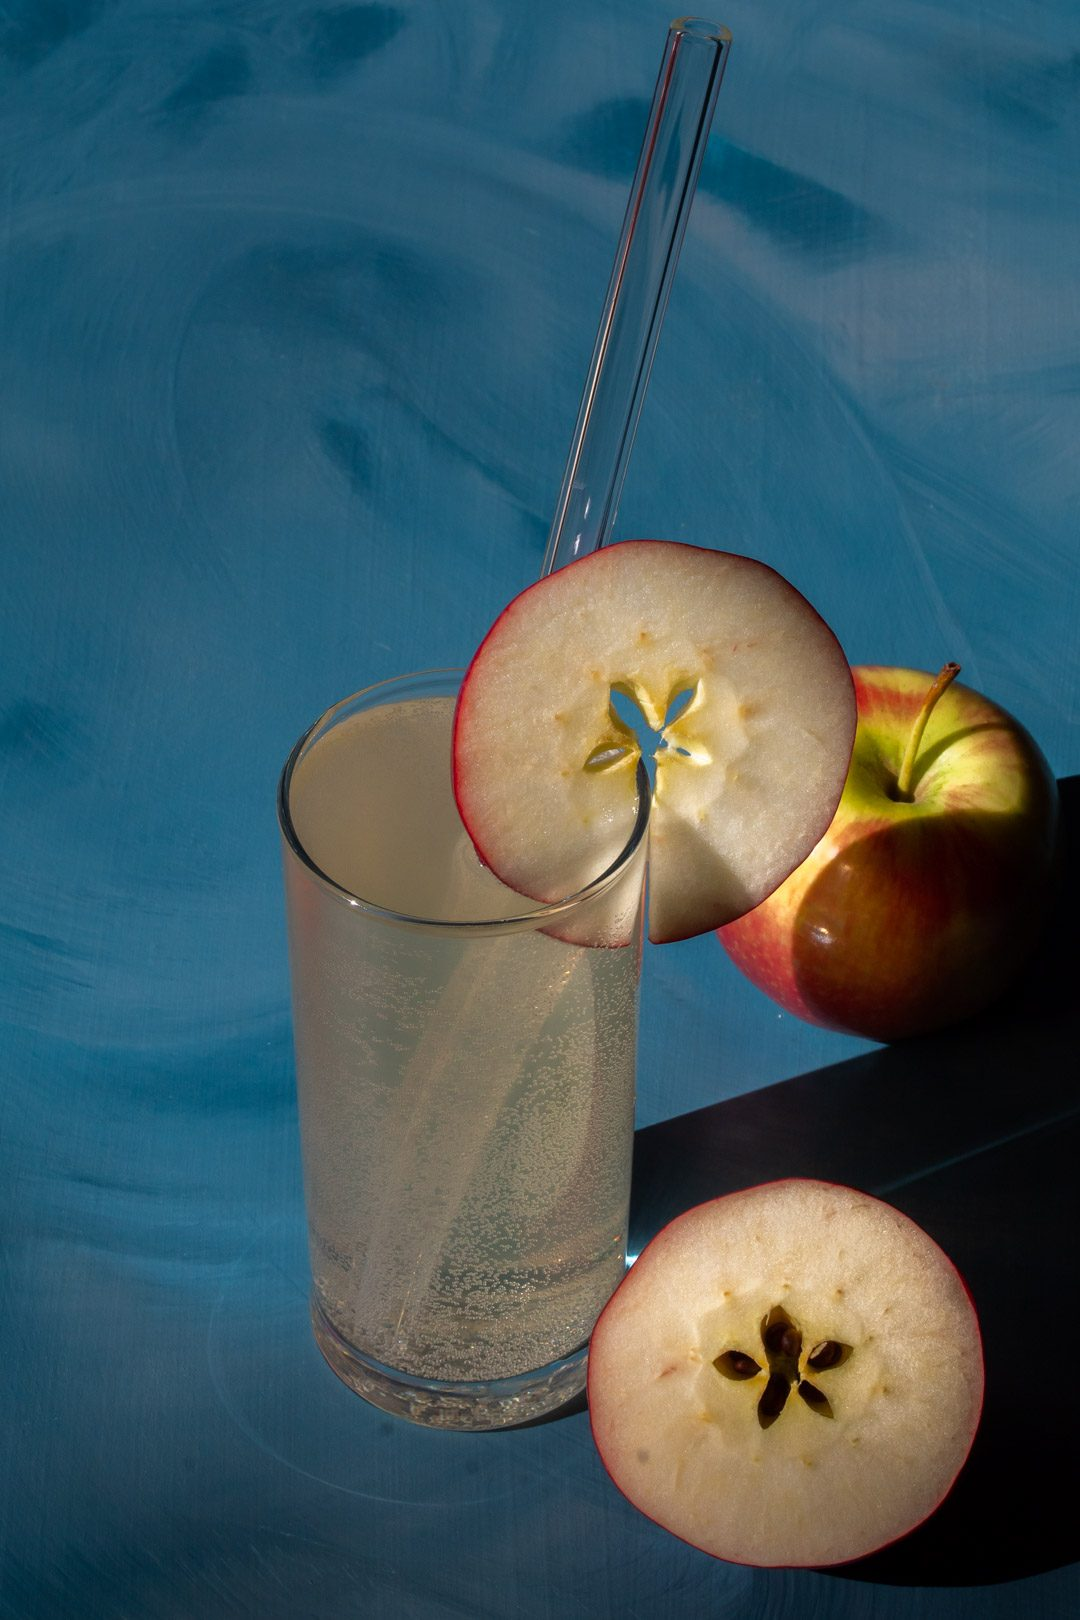 apple shrub gin fizz cocktail from 45 degrees on blue background with apples